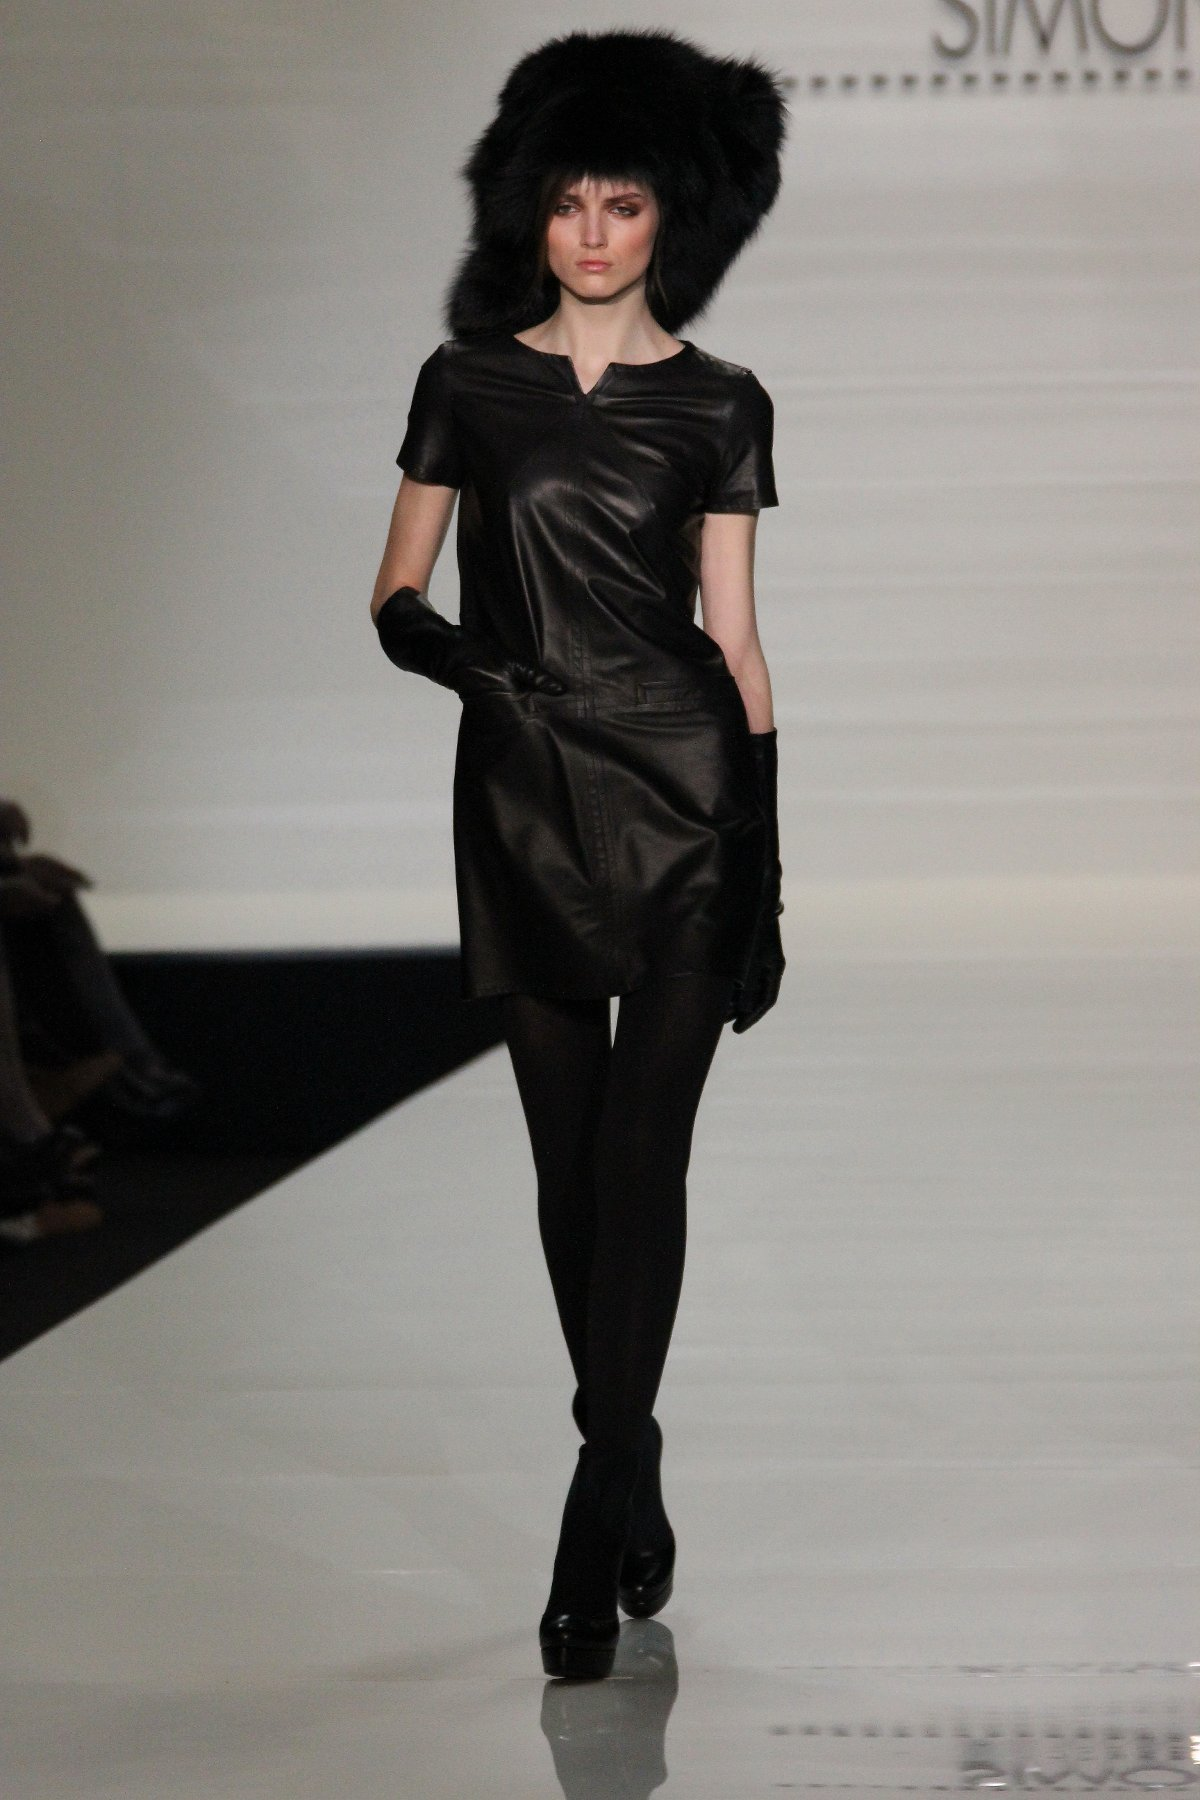 Catwalk Simonetta Ravizza Fall-Winter 2012-2013 Women's Collection Fashion Show Catwalk-Milano Fashion Week